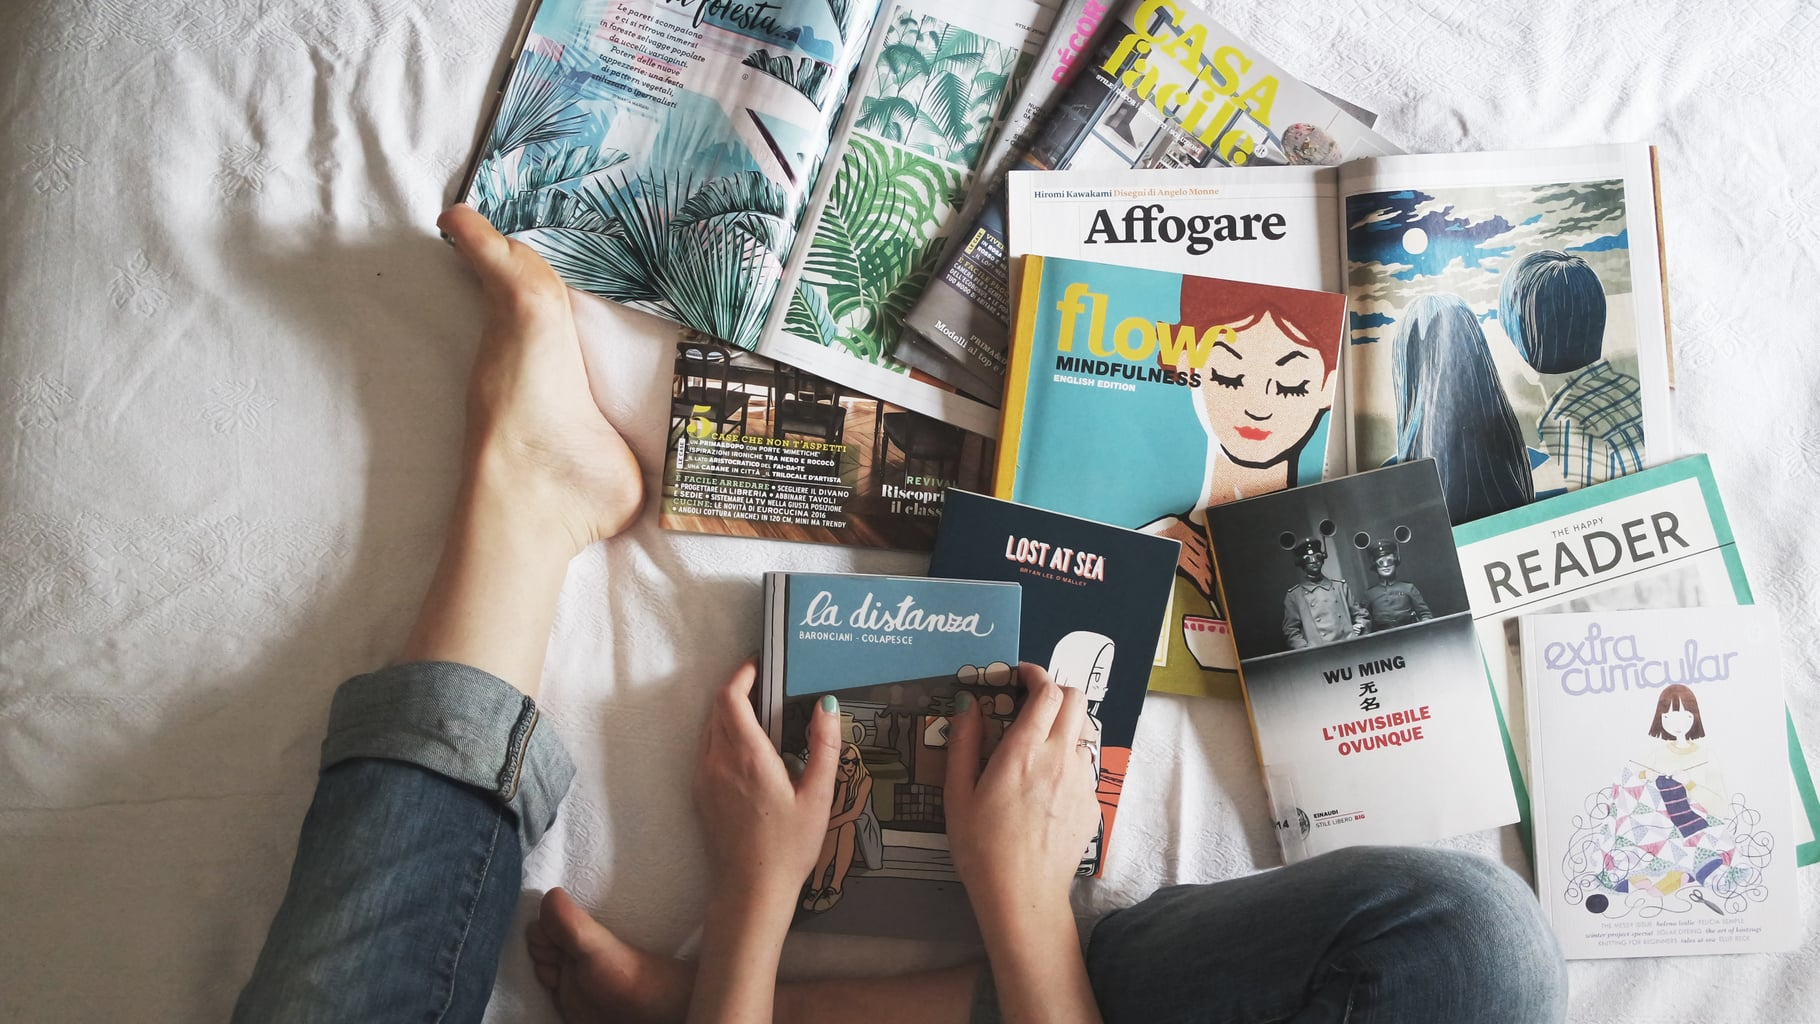 Legs wearing jeans on a bed with white sheets and a pile of colorful books of different types.